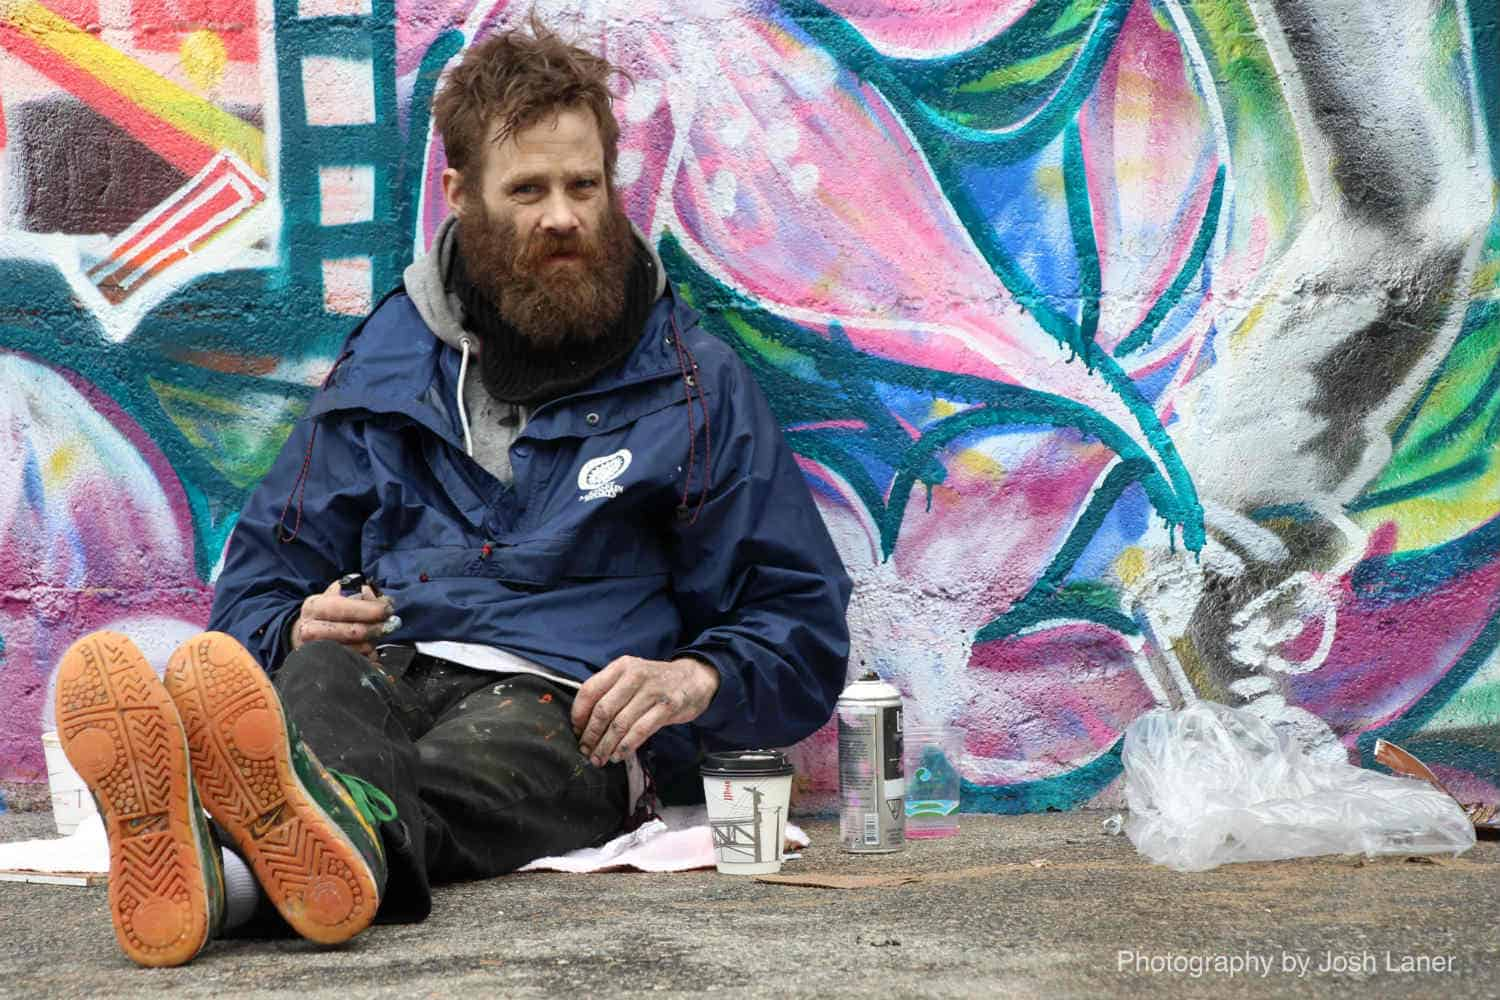 Ken Foster Review – The Life Of A Homeless Street Artist - OC Movie Reviews - Movie Reviews, Movie News, Documentary Reviews, Short Films, Short Film Reviews, Trailers, Movie Trailers, Interviews, film reviews, film news, hollywood, indie films, documentaries